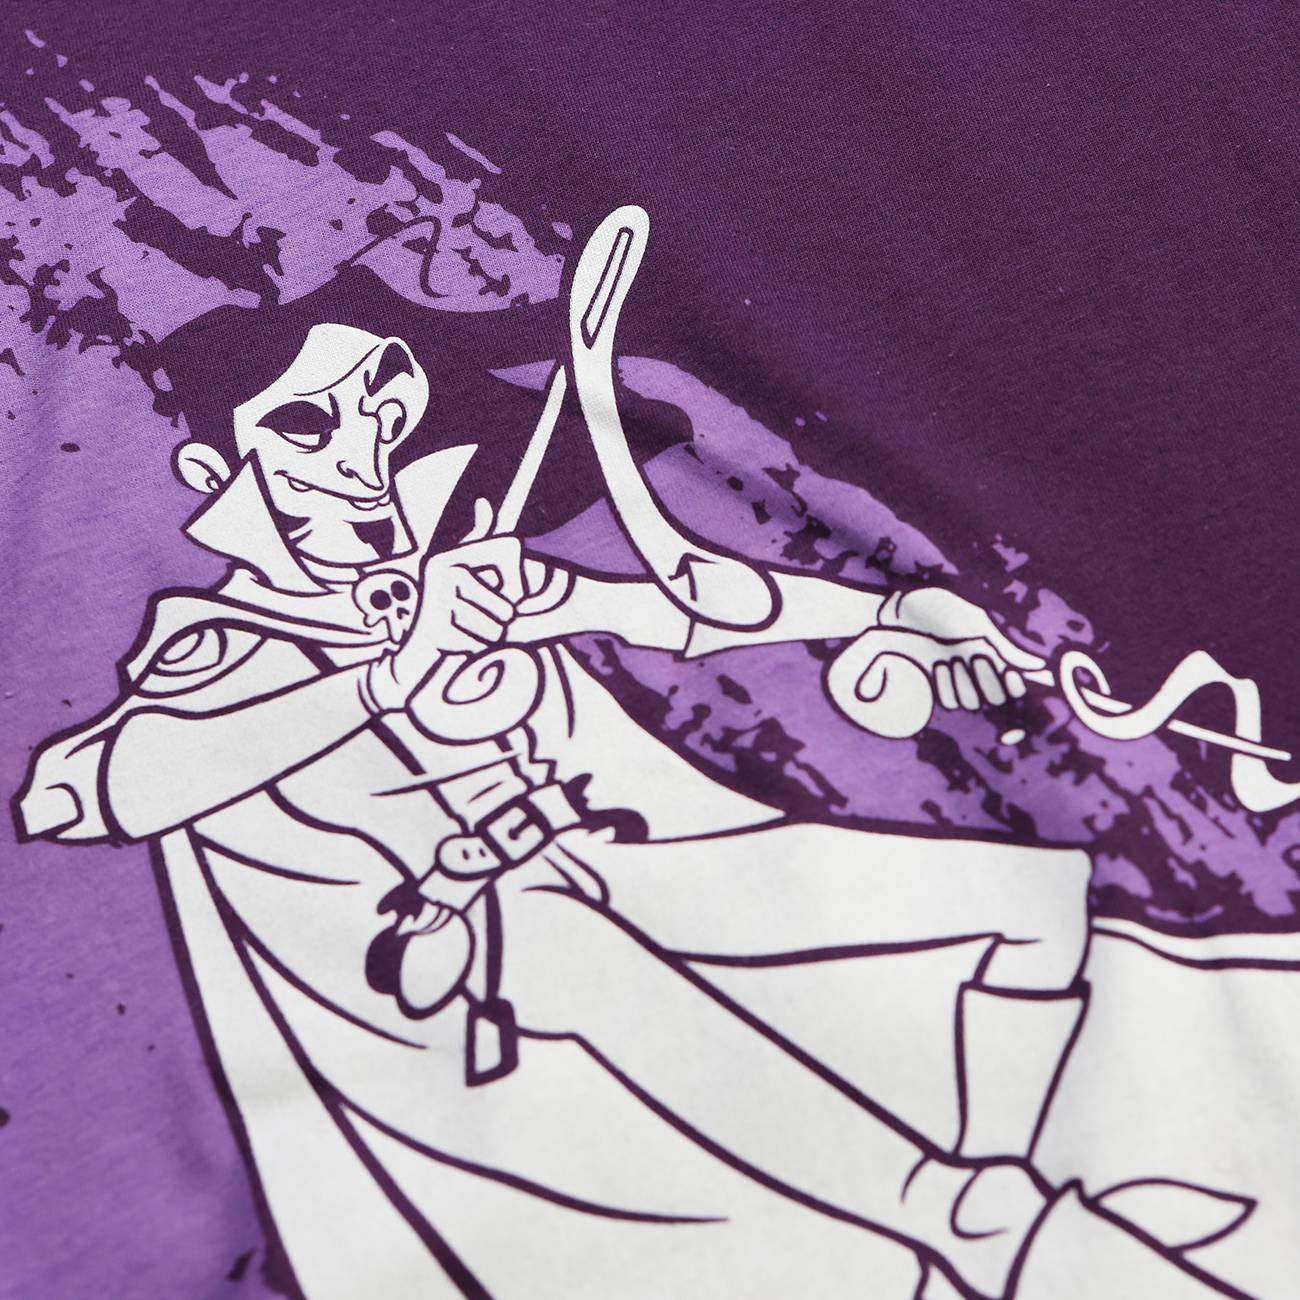 Acquisitions Incorporated Jim Darkmagic Tee